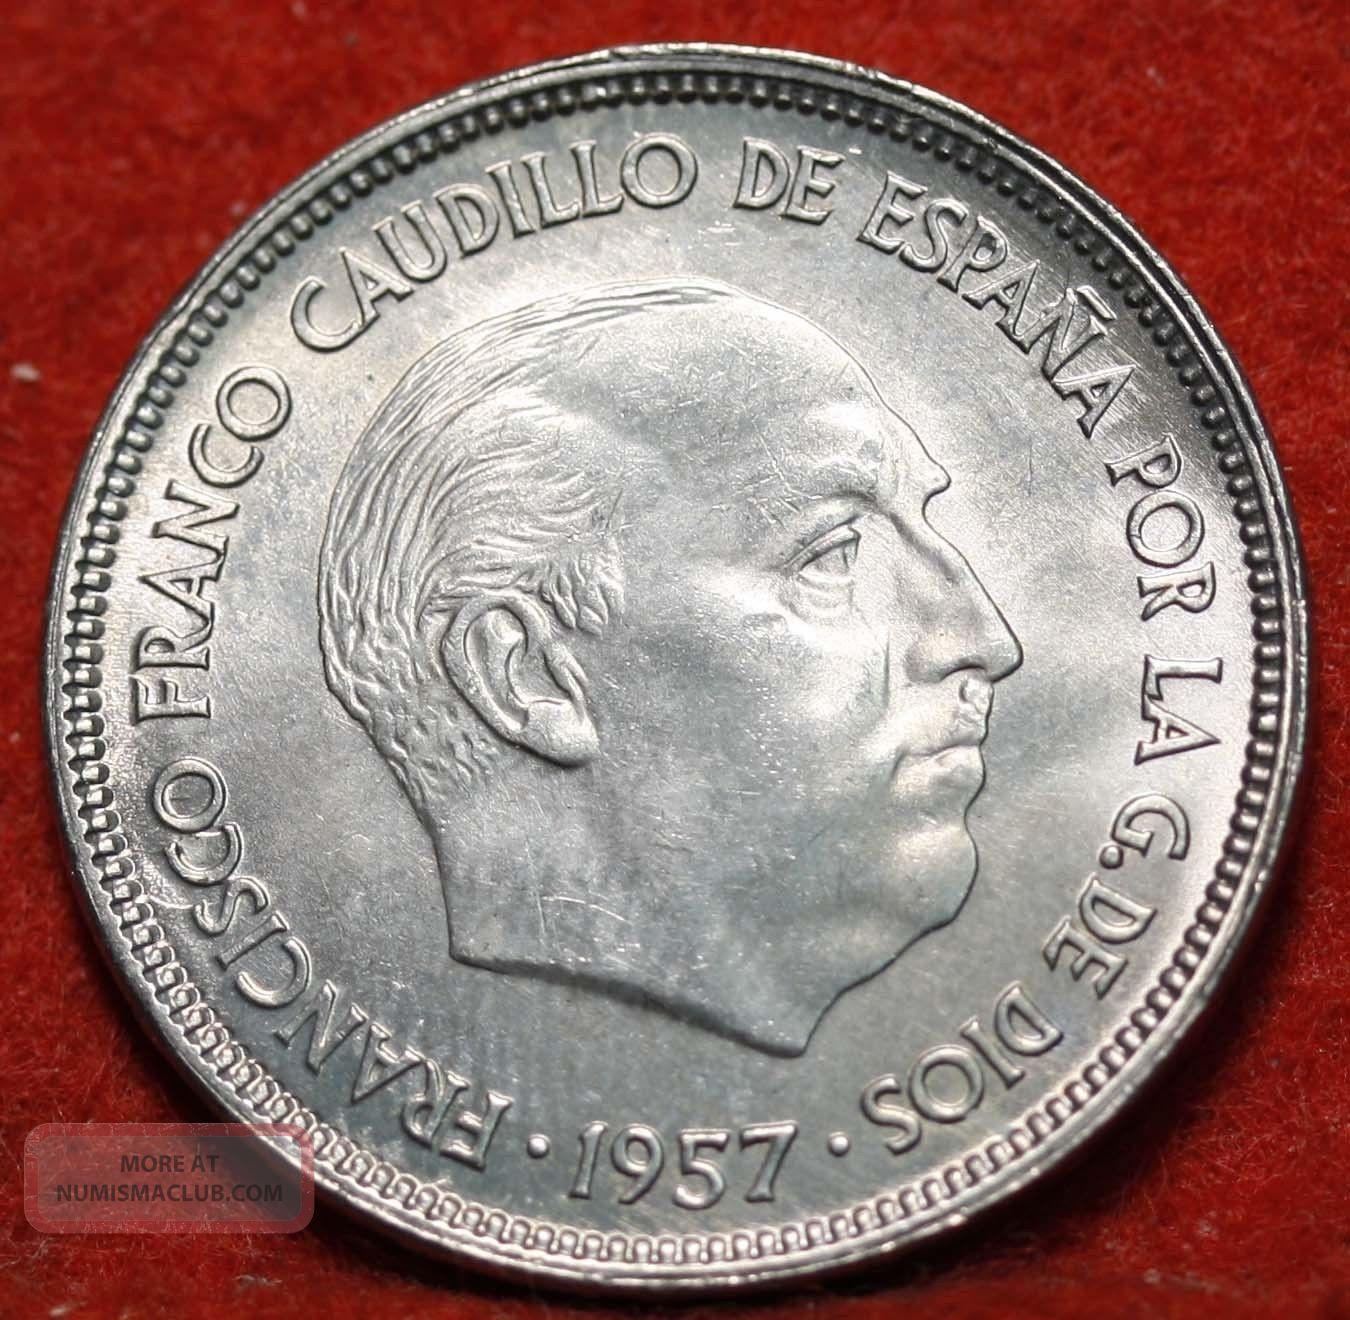 Circulated 1957 Spain 25 Pesetas Y119 Foreign Coin S H